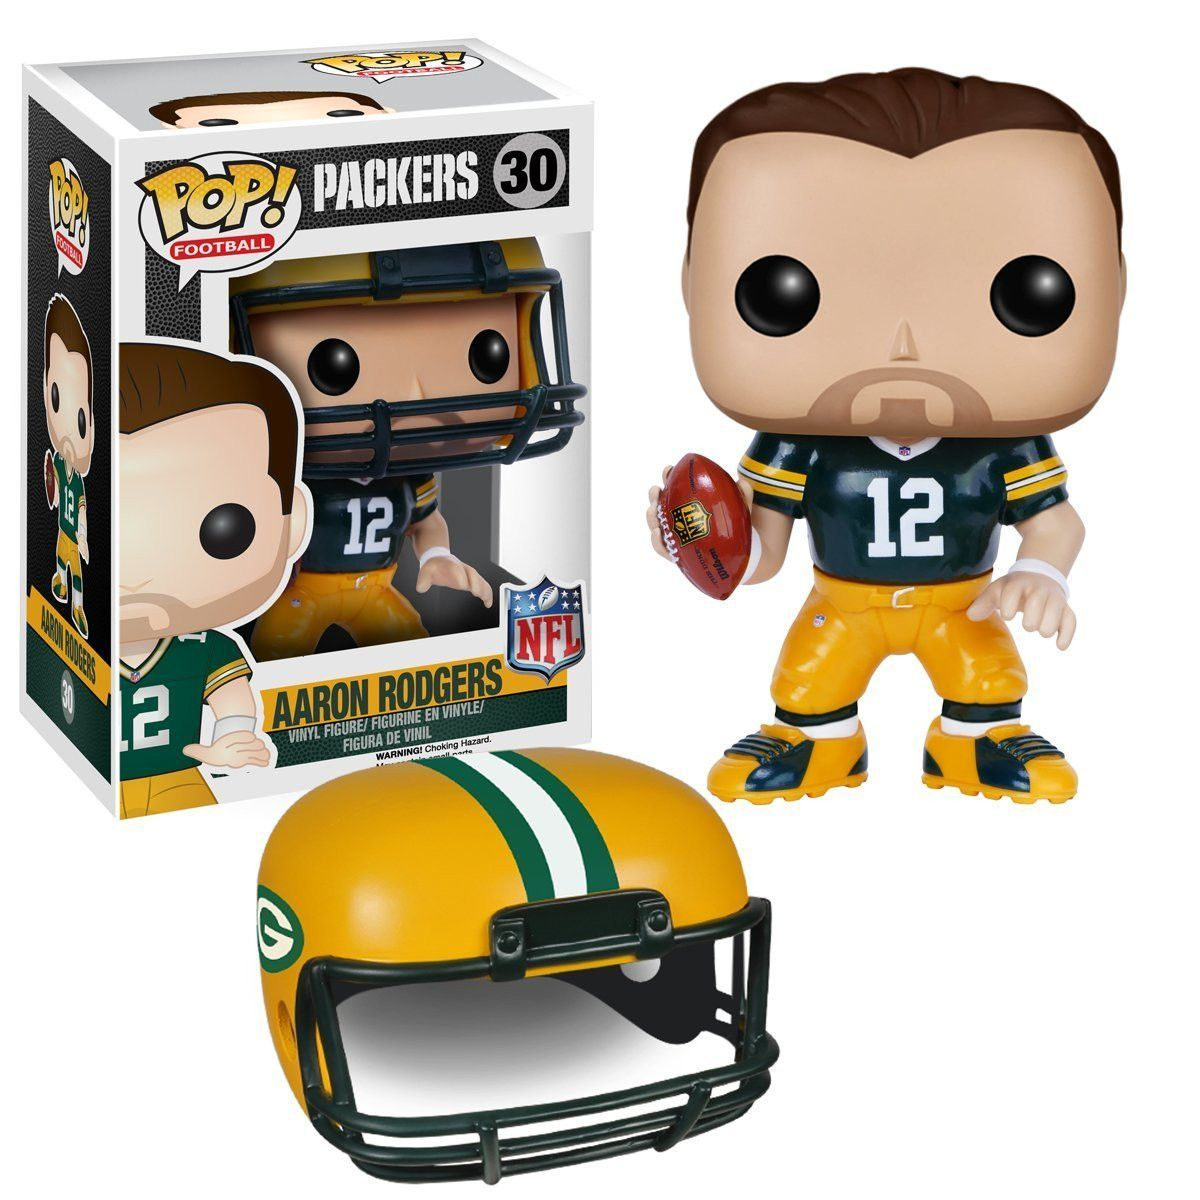 Nfl Green Bay Packers Pop Aaron Rodgers Vinyl Figure Clay Matthews Green Bay Packers Nfl